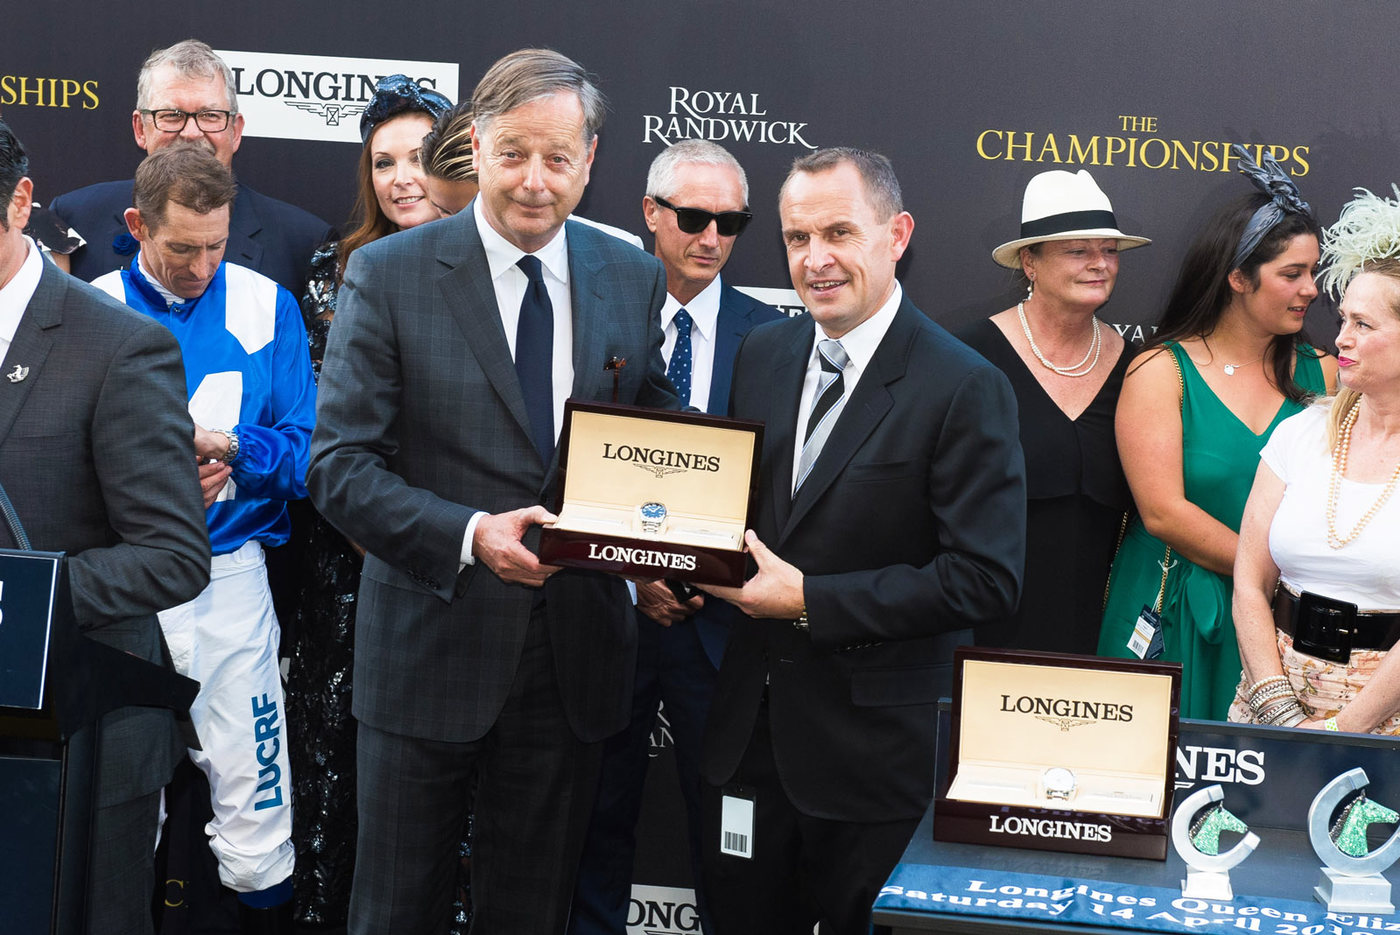 Longines Flat Racing Event: Winx claimed victory at the Longines Queen Elizabeth Stakes 8